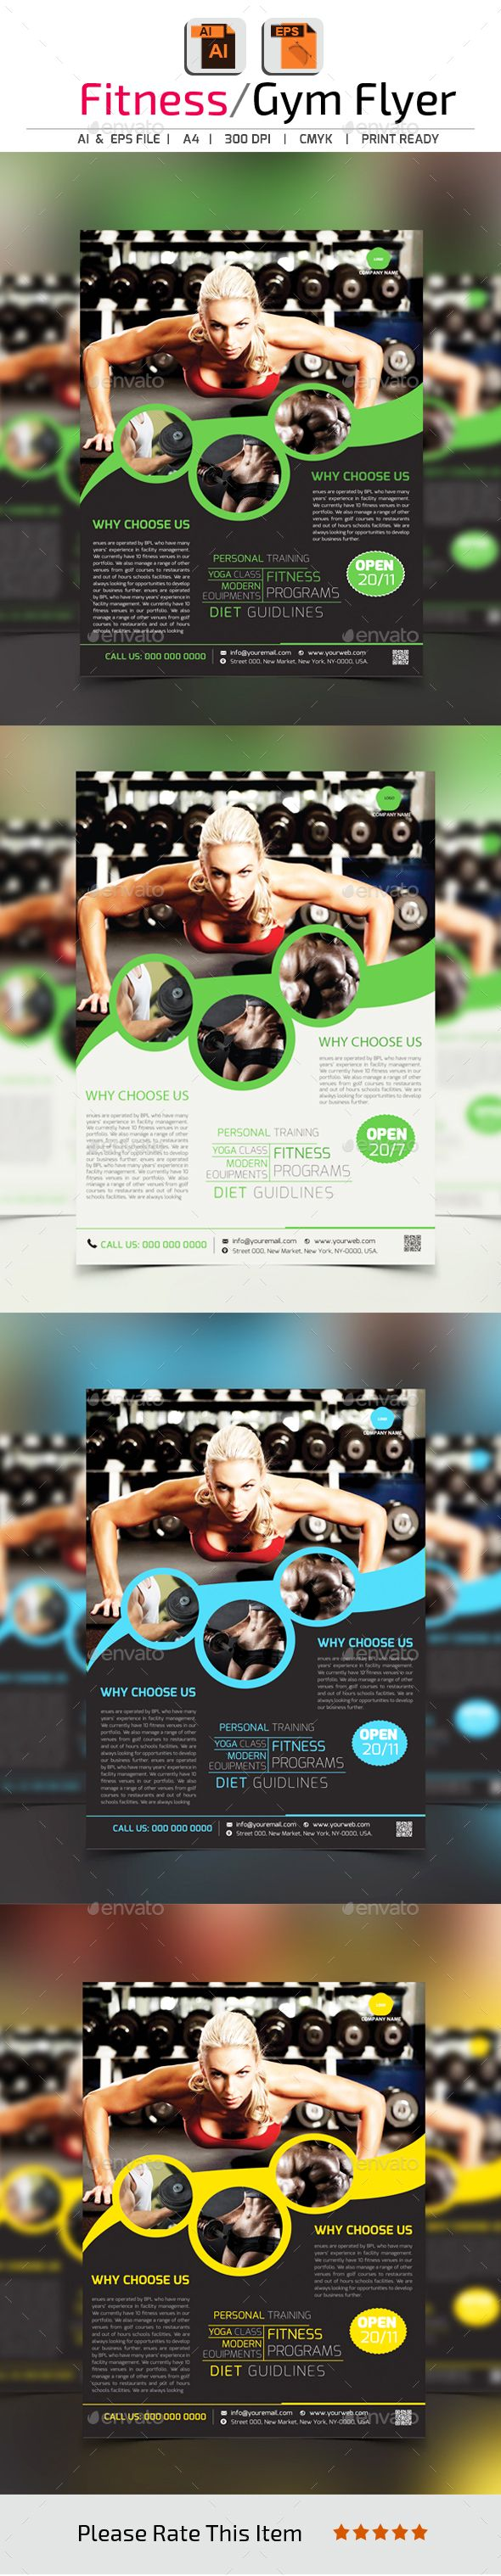 967 best event flyer ideas images on pinterest event flyers font